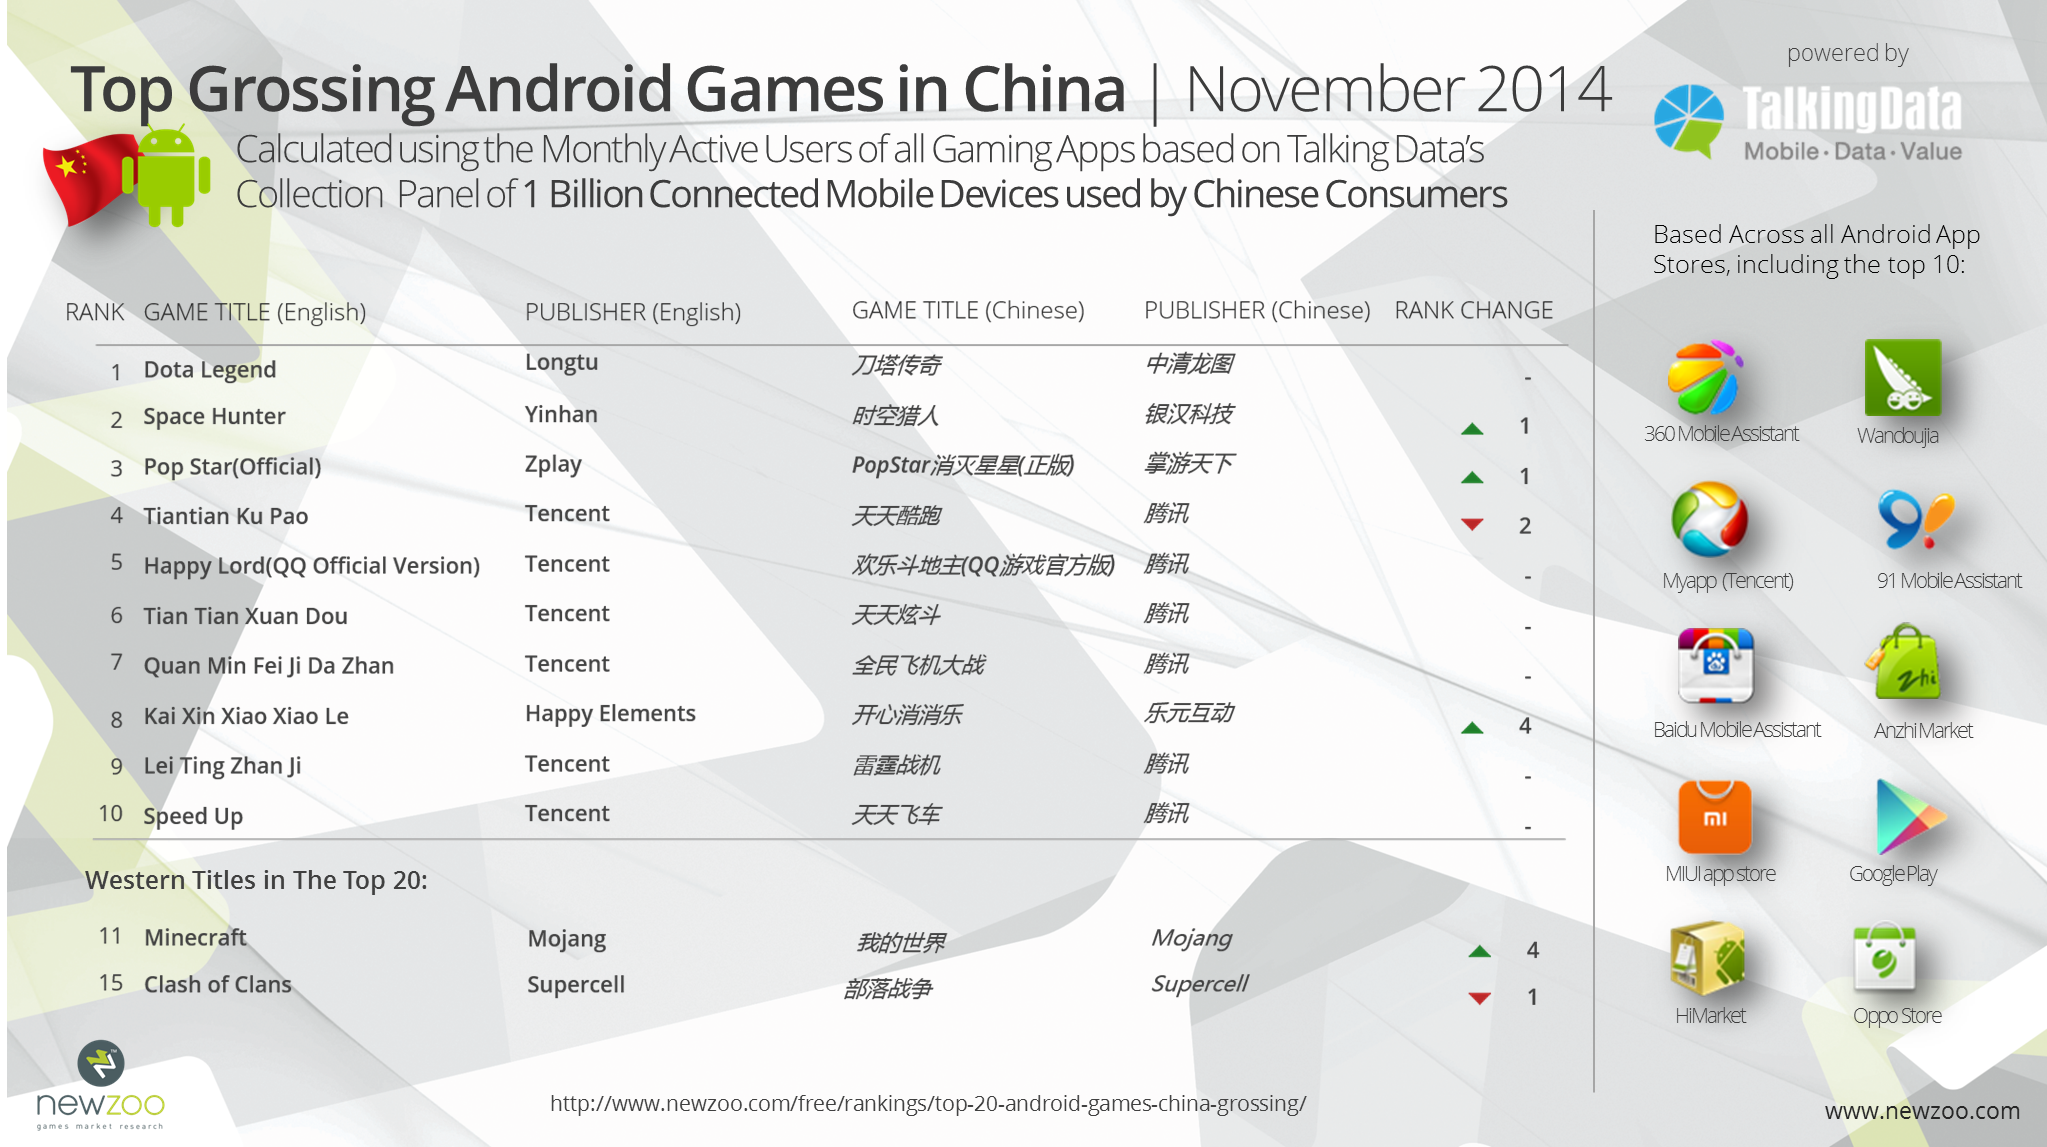 Newzoo_TalkingData_Grossing_Android_Games_Ranking_November_2014_v1